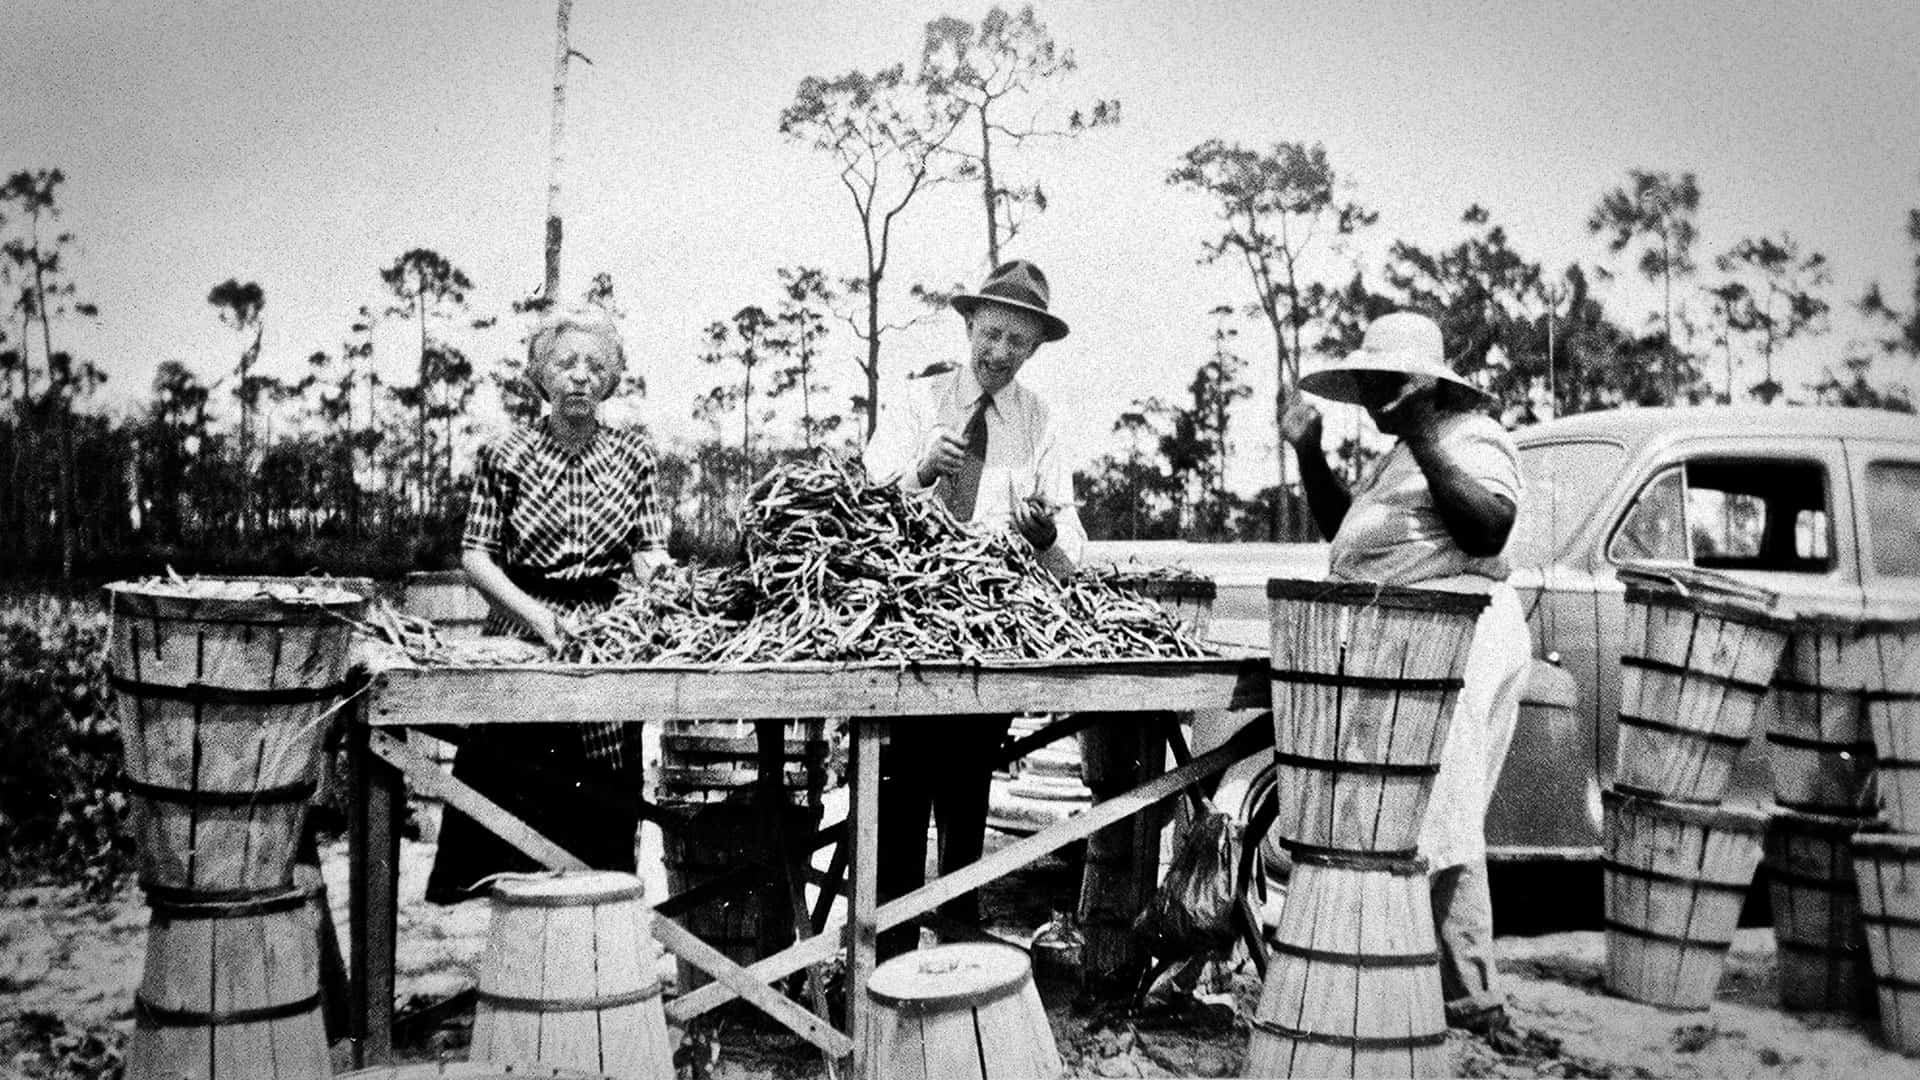 Agriculture in early Deerfield Beach, FL